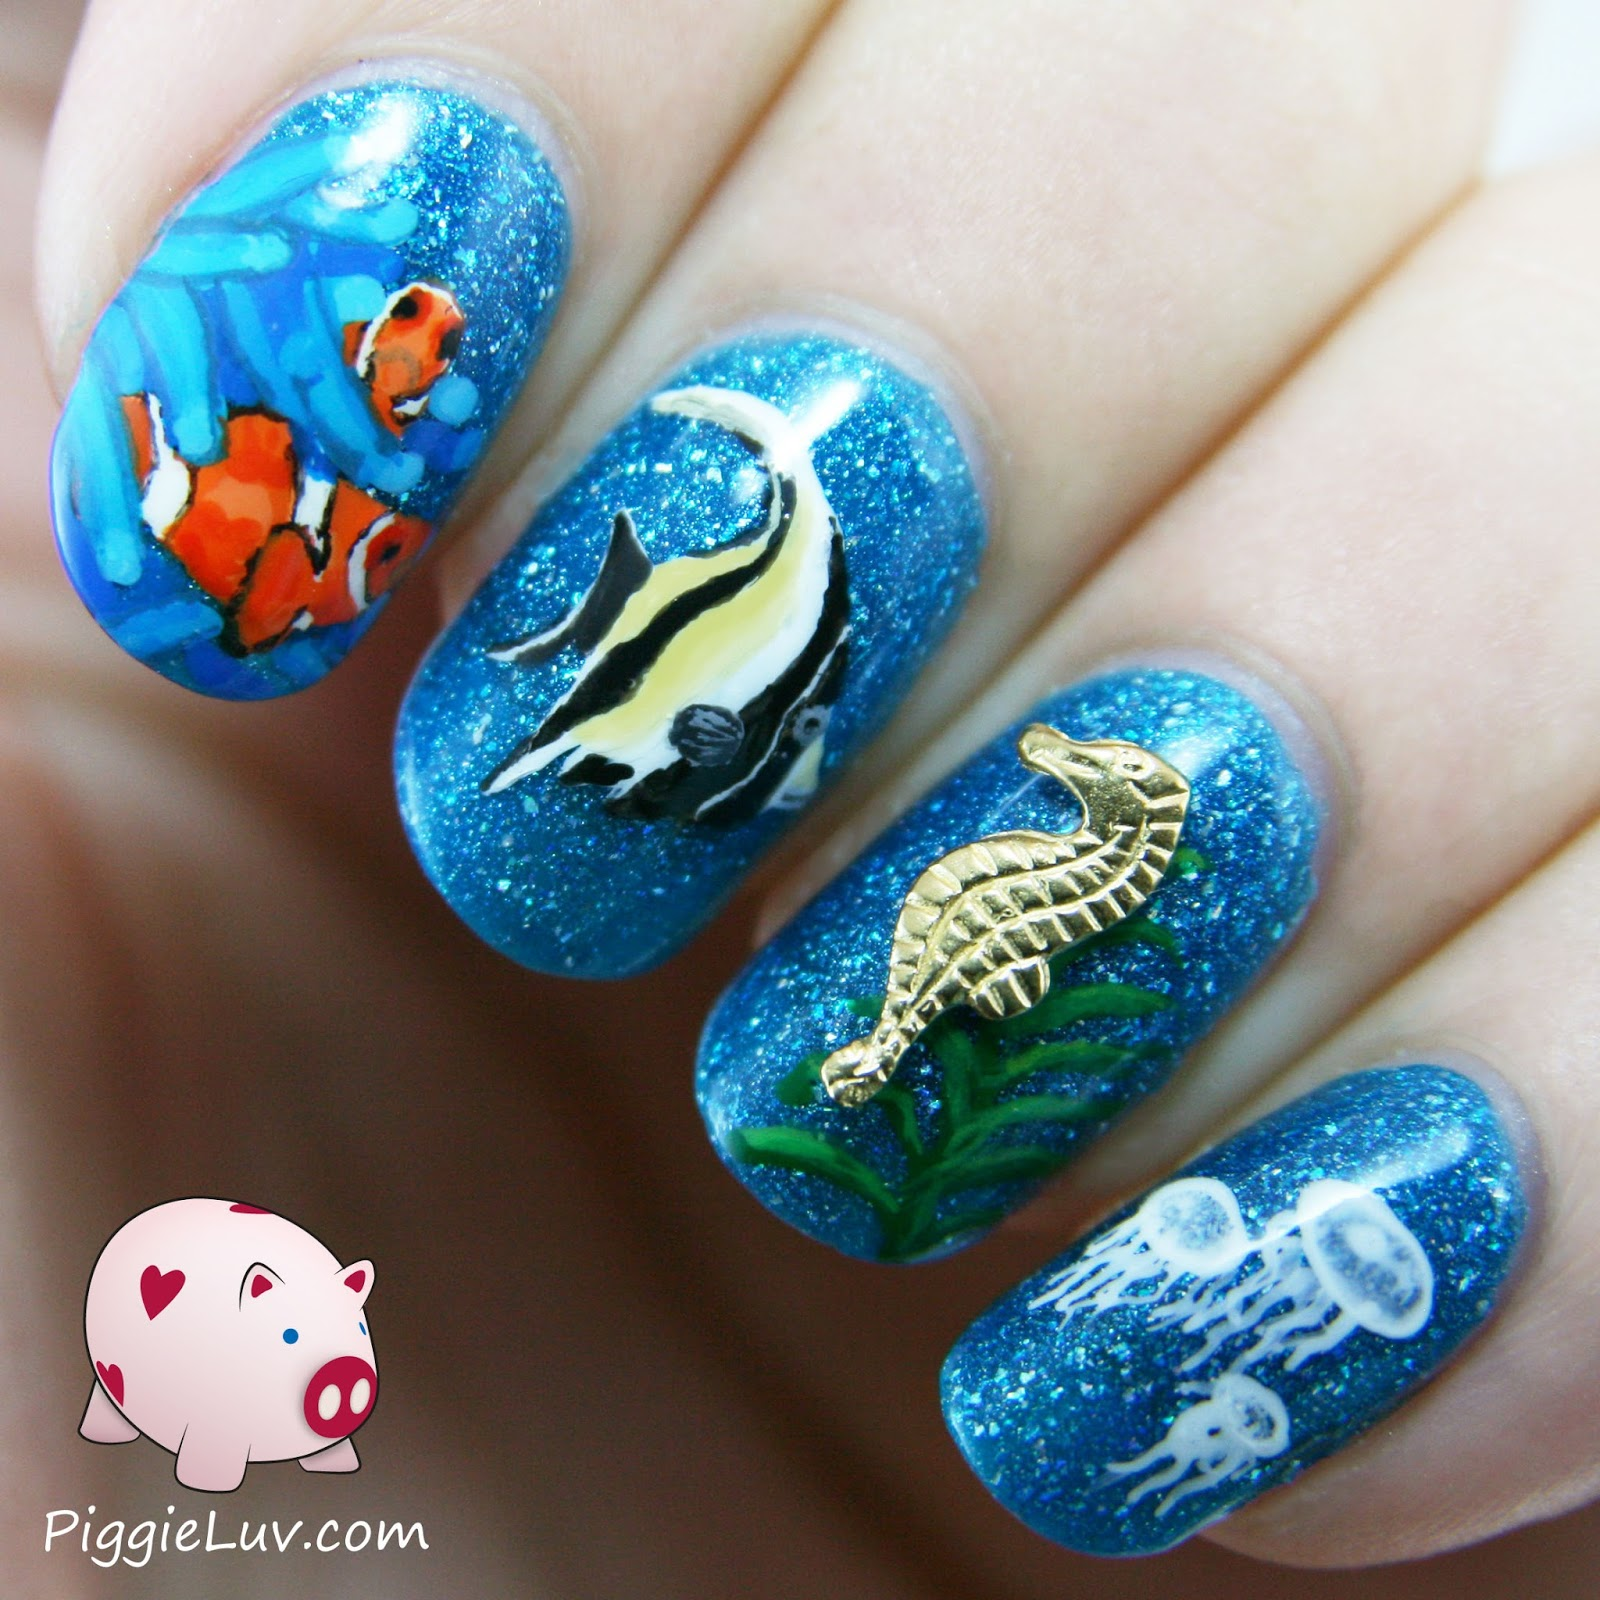 PiggieLuv: Feeeshes! Sea life nail art with sea horse charm